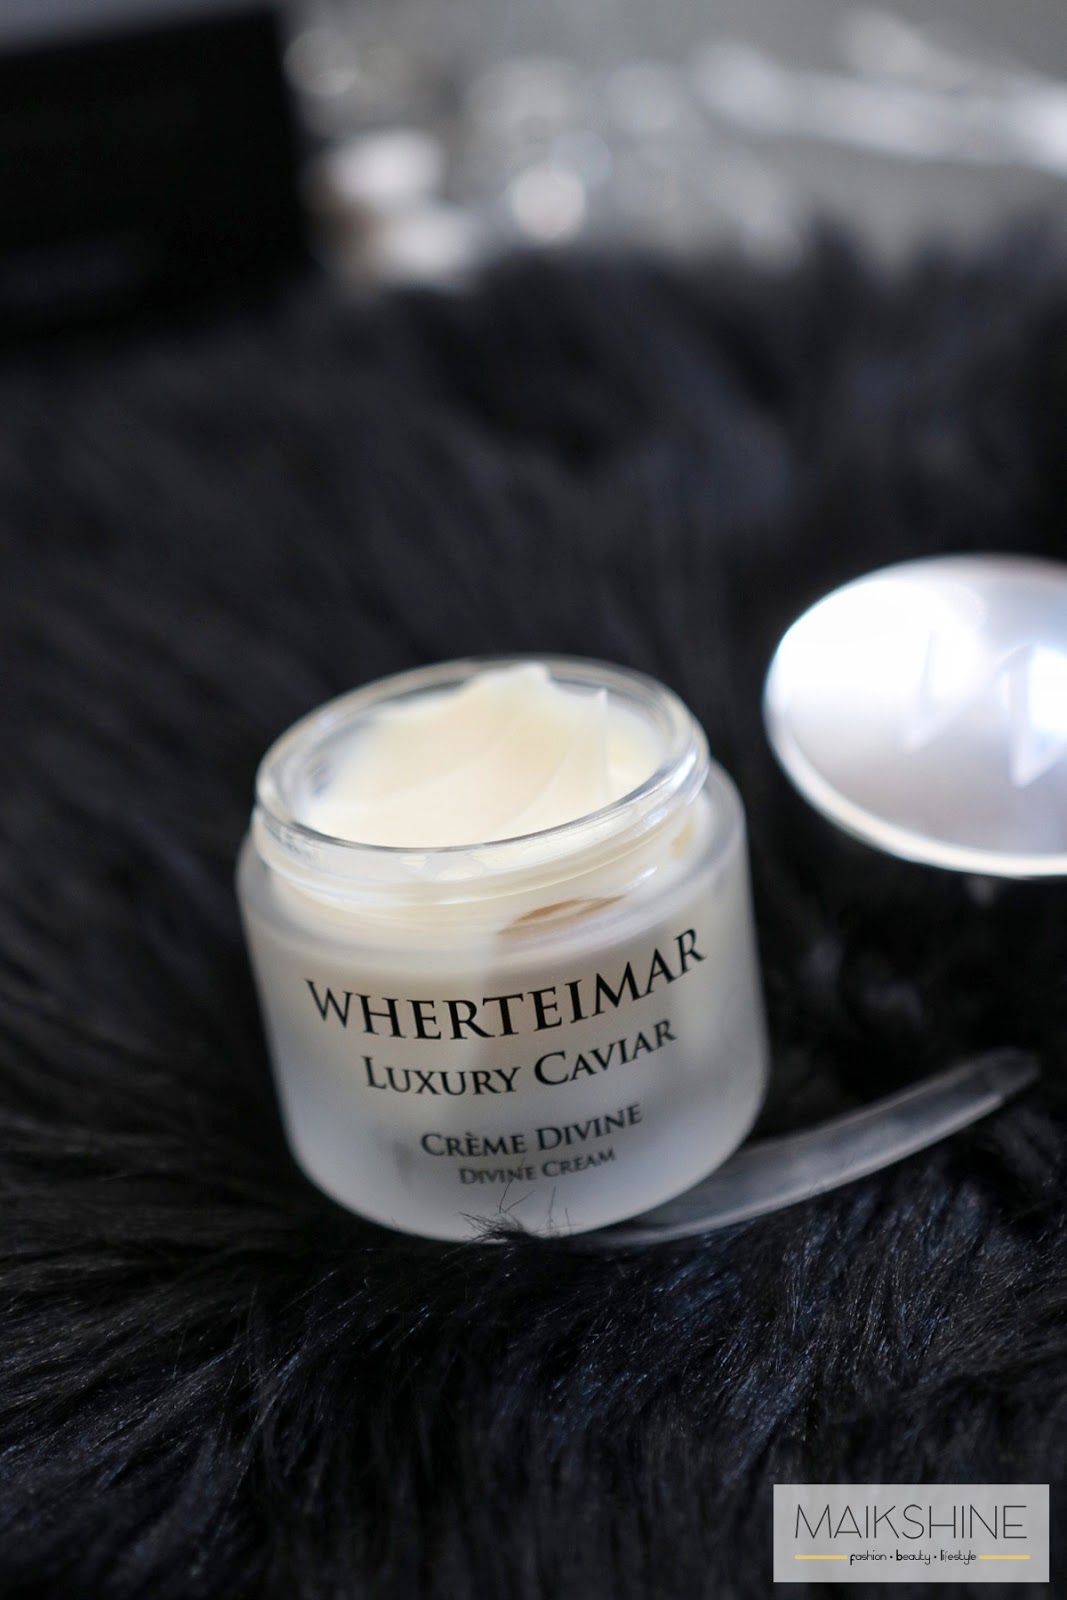 Crème Divine Wherteimar review